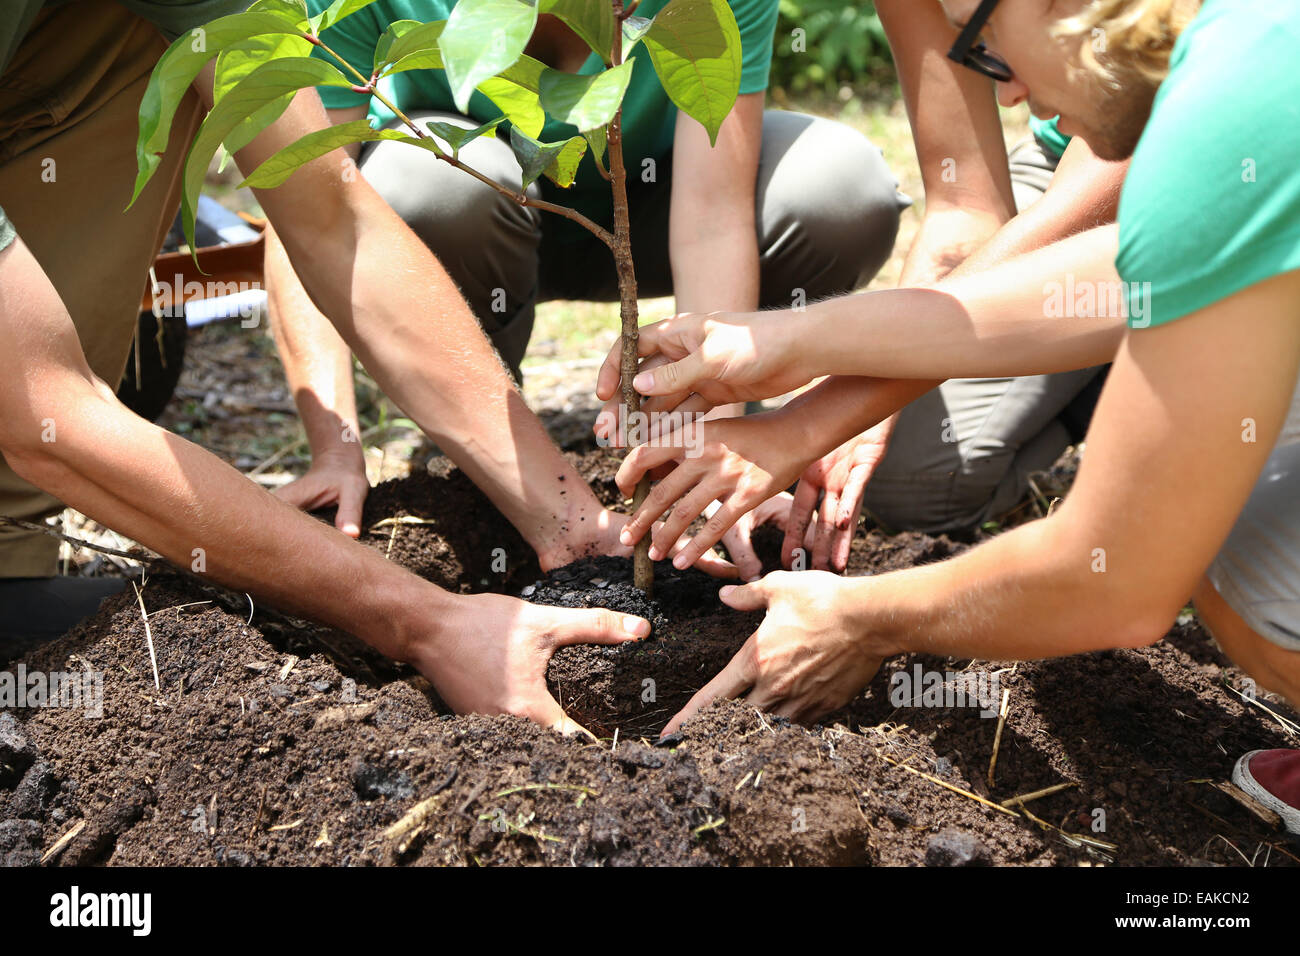 People planting tree seedling together - Stock Image